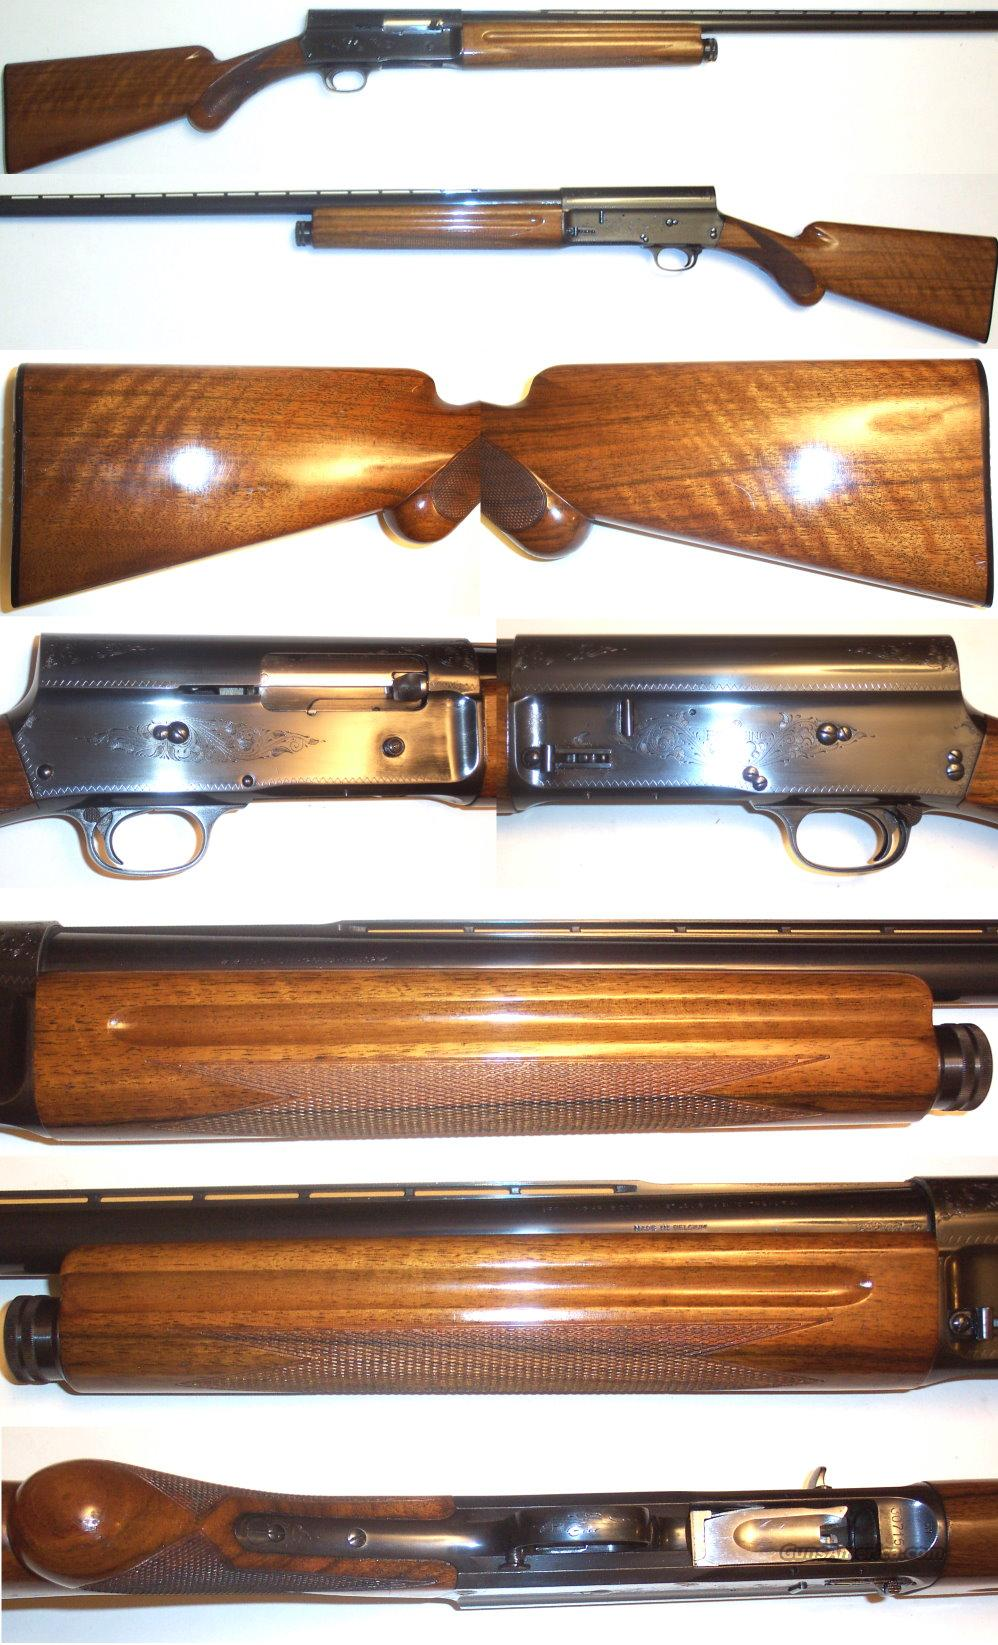 "'66 Belgium Browning A5 28"" Mod Vent Rib Left Hand Safety  Guns > Shotguns > Browning Shotguns > Autoloaders > Hunting"